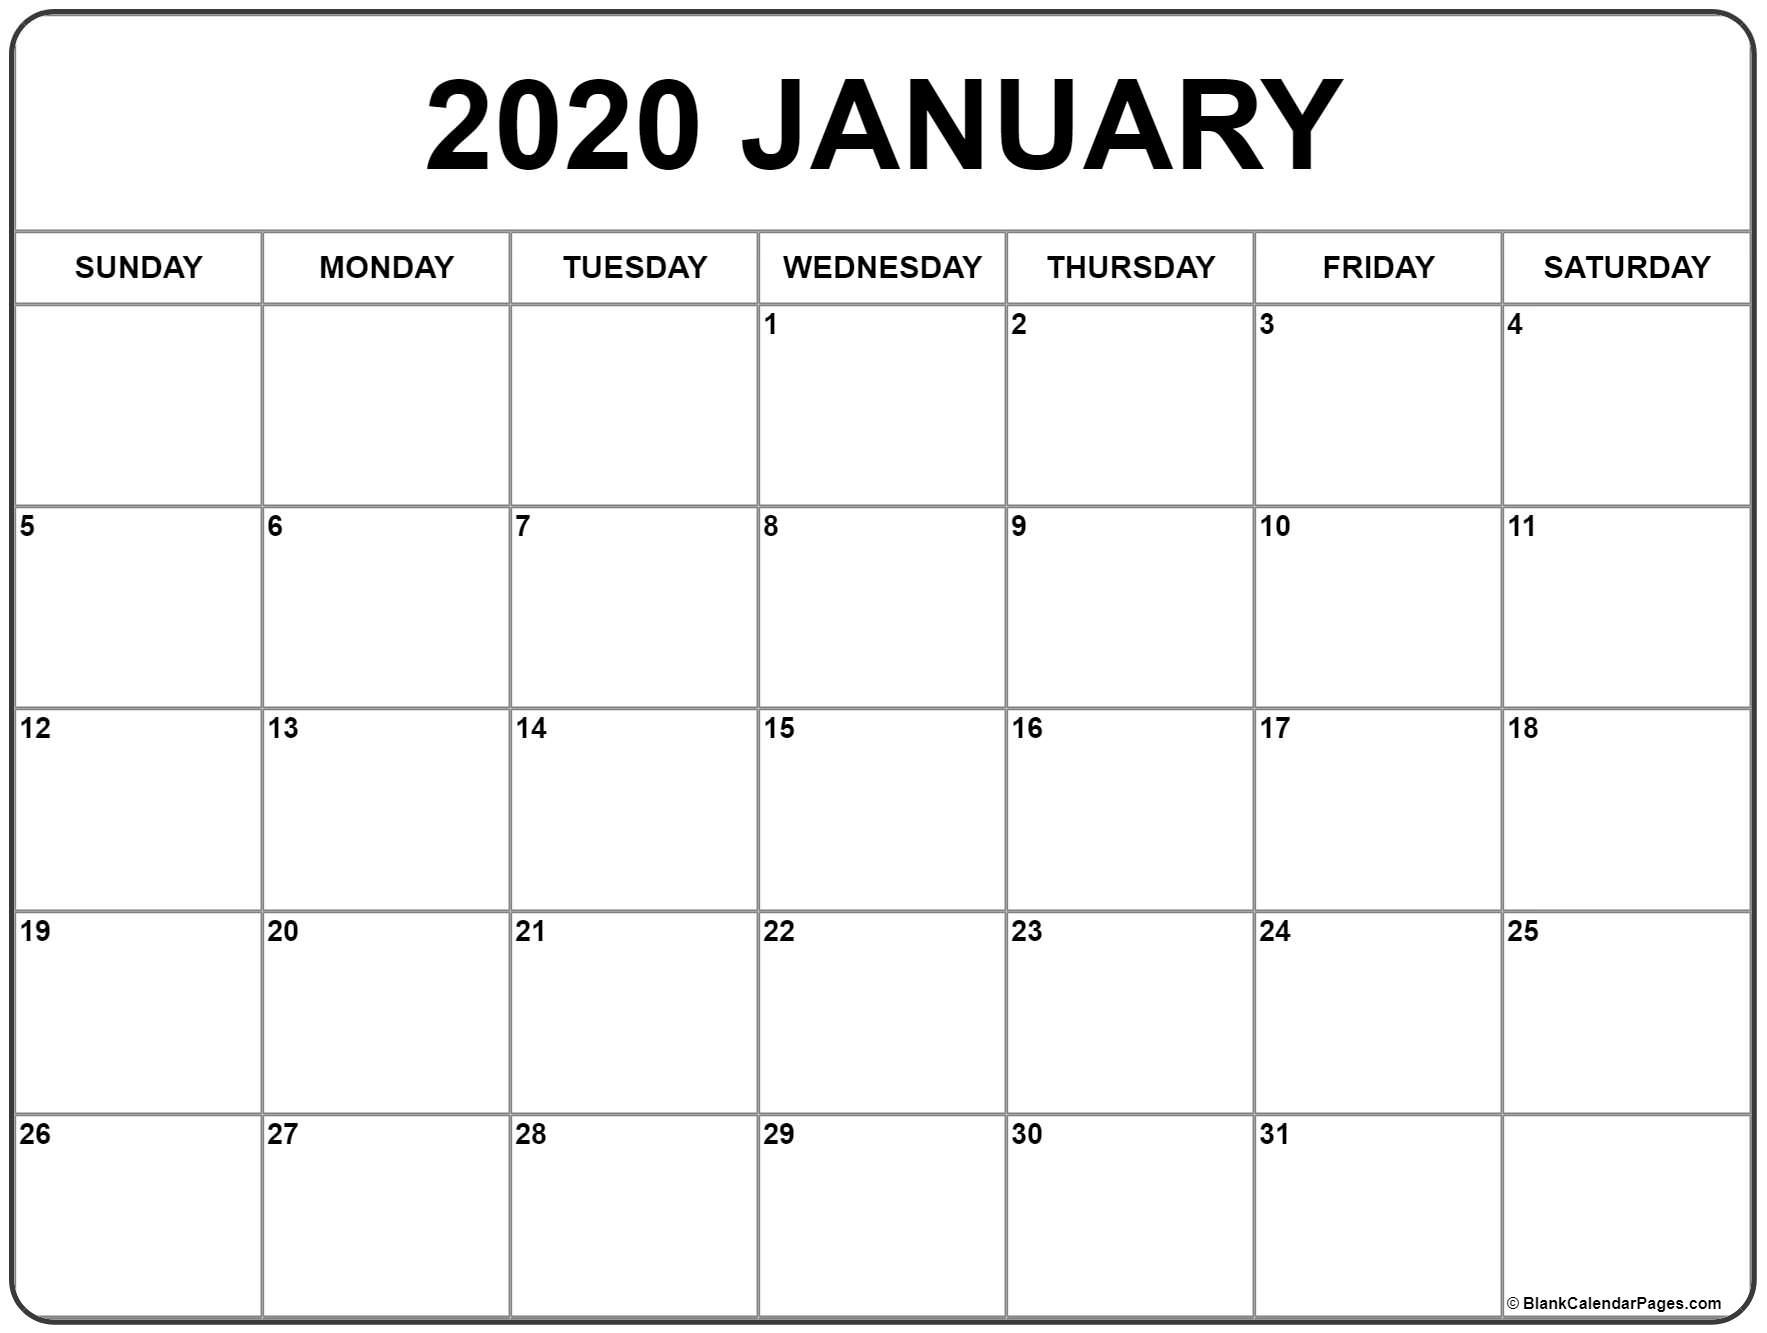 January 2020 Calendar Holidays Printable - Togo.wpart.co